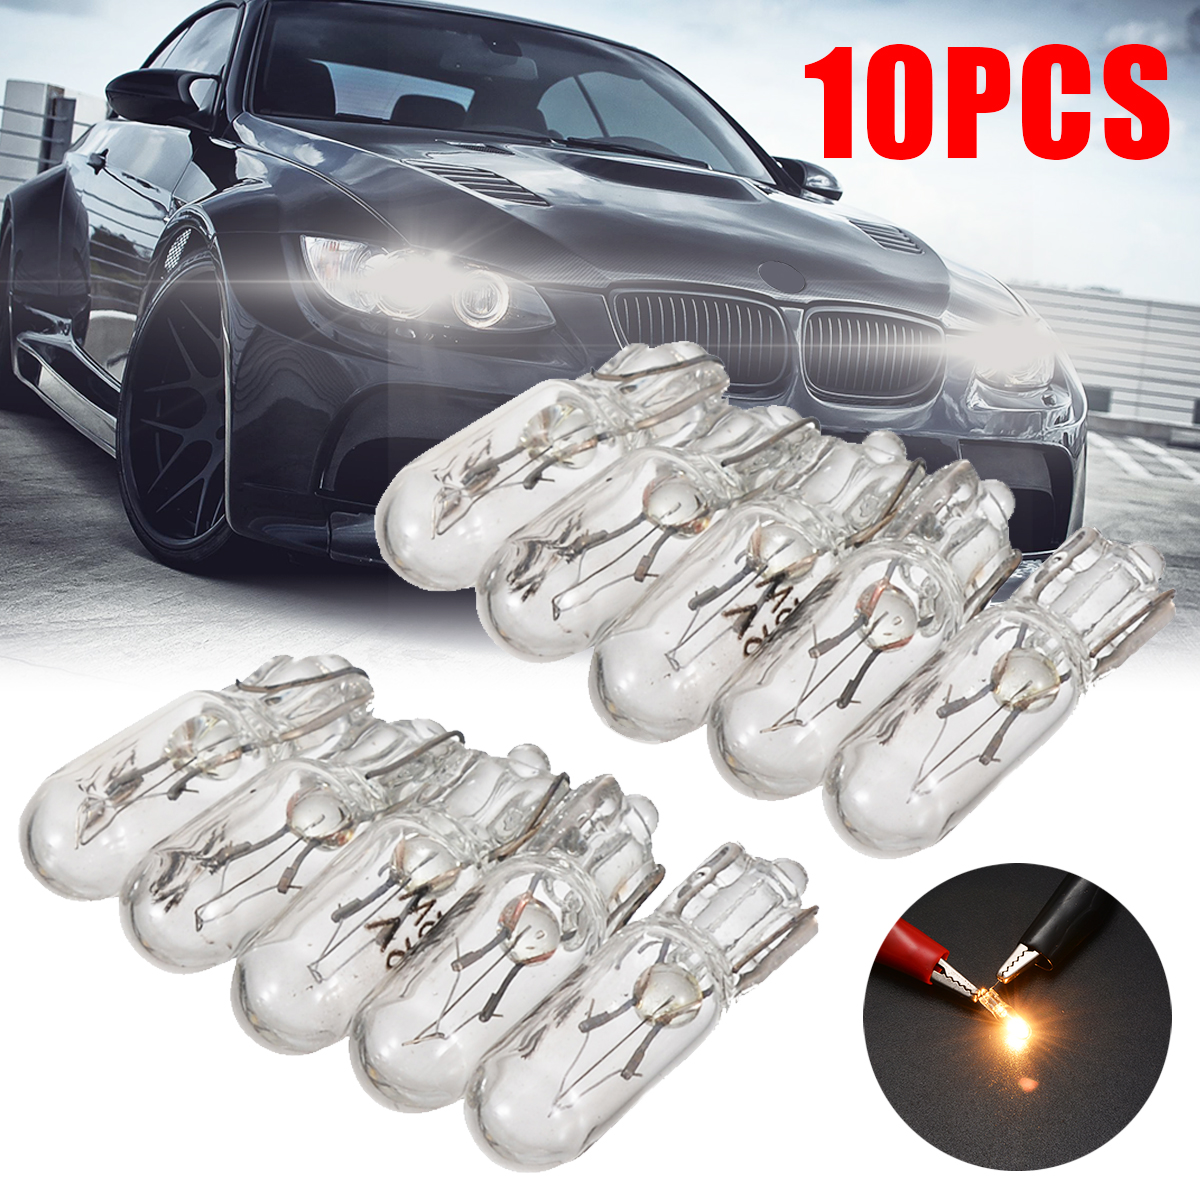 10pcs <font><b>T5</b></font> 286 Glass Car Wedge Dashboard Instrument Panel Brake Light Amber Auto Bulb <font><b>12V</b></font> <font><b>1.2W</b></font> image